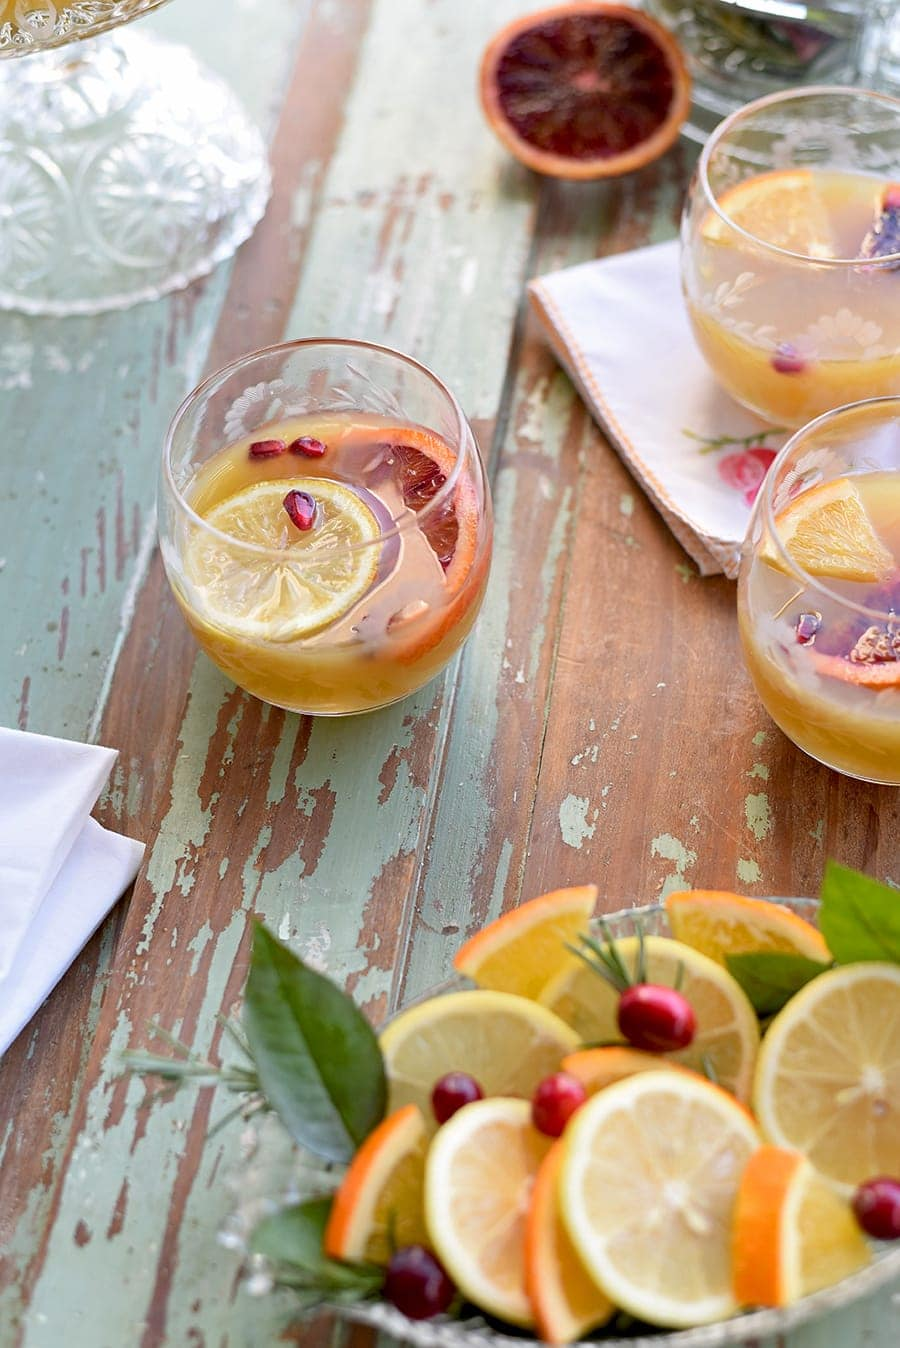 We've made some updates to this cocktail recipe, but you'll find that our Citrus Whiskey Tea Punch still has lots of old school charm. Bring on the holiday cheer! #christmaspunch #holidaypunch #holidaycocktail #christmasdrink